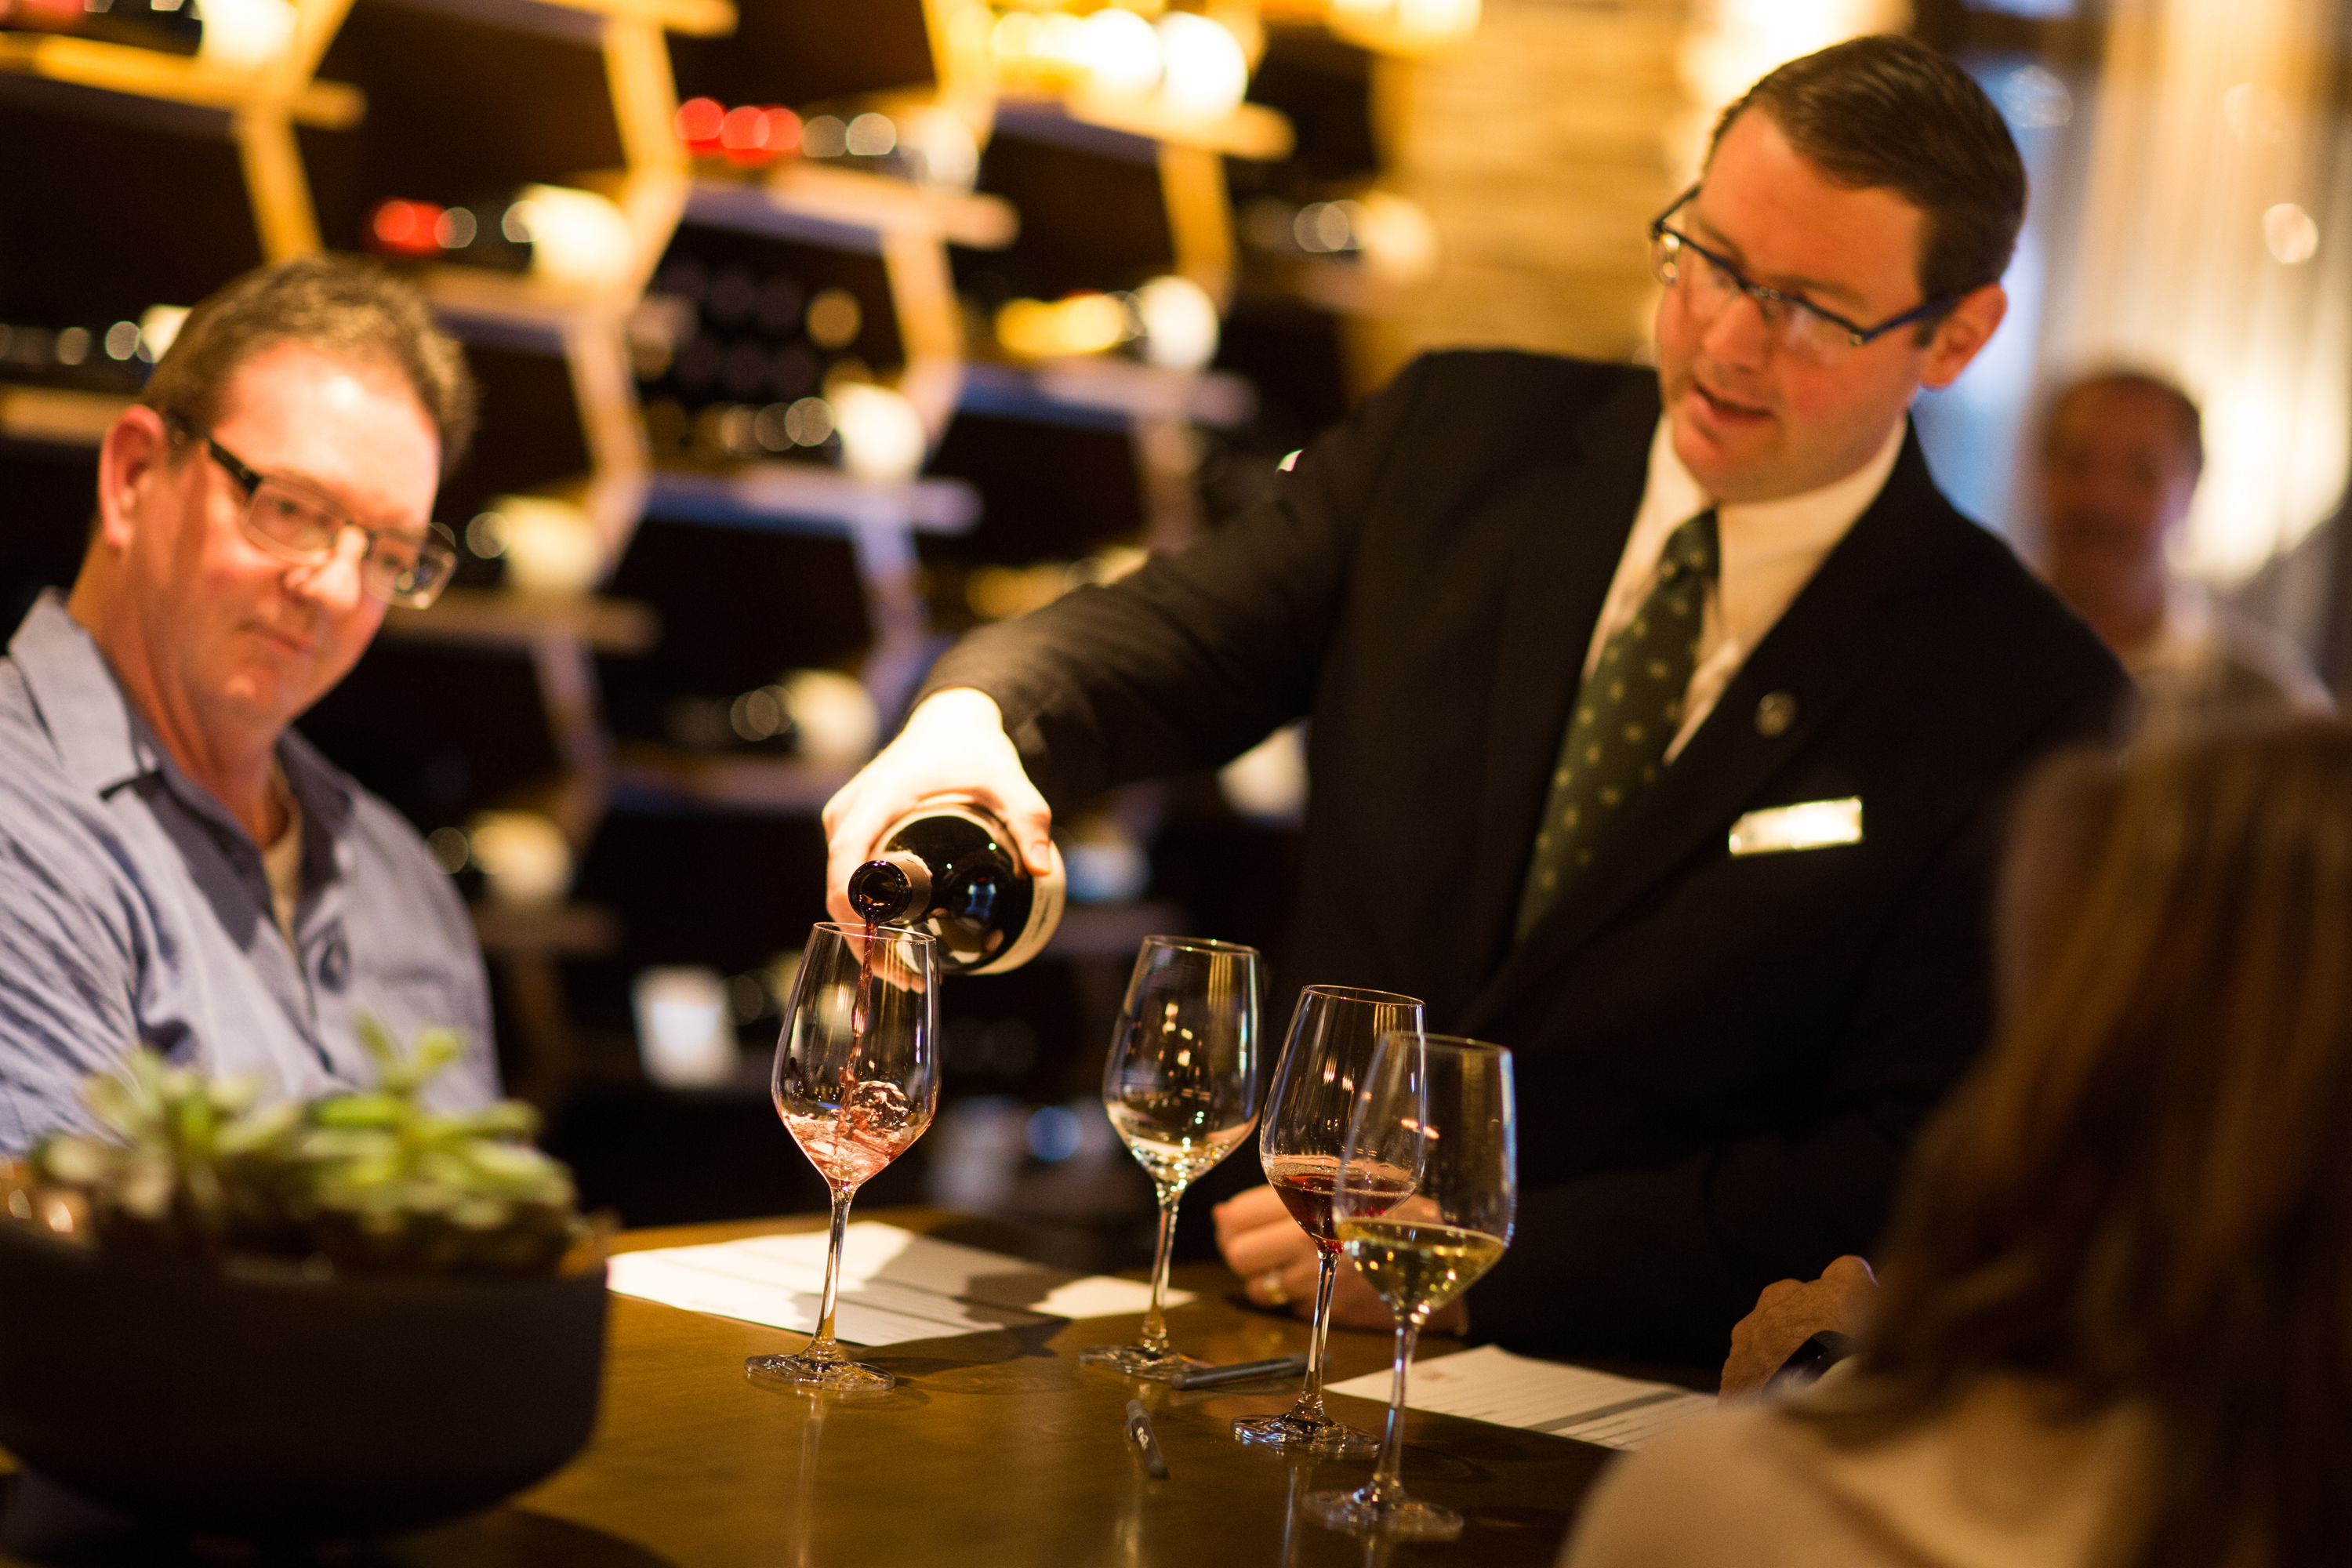 Jeff Birkemeier pours a glass of red wine for a guest at Stave Wine Cellar